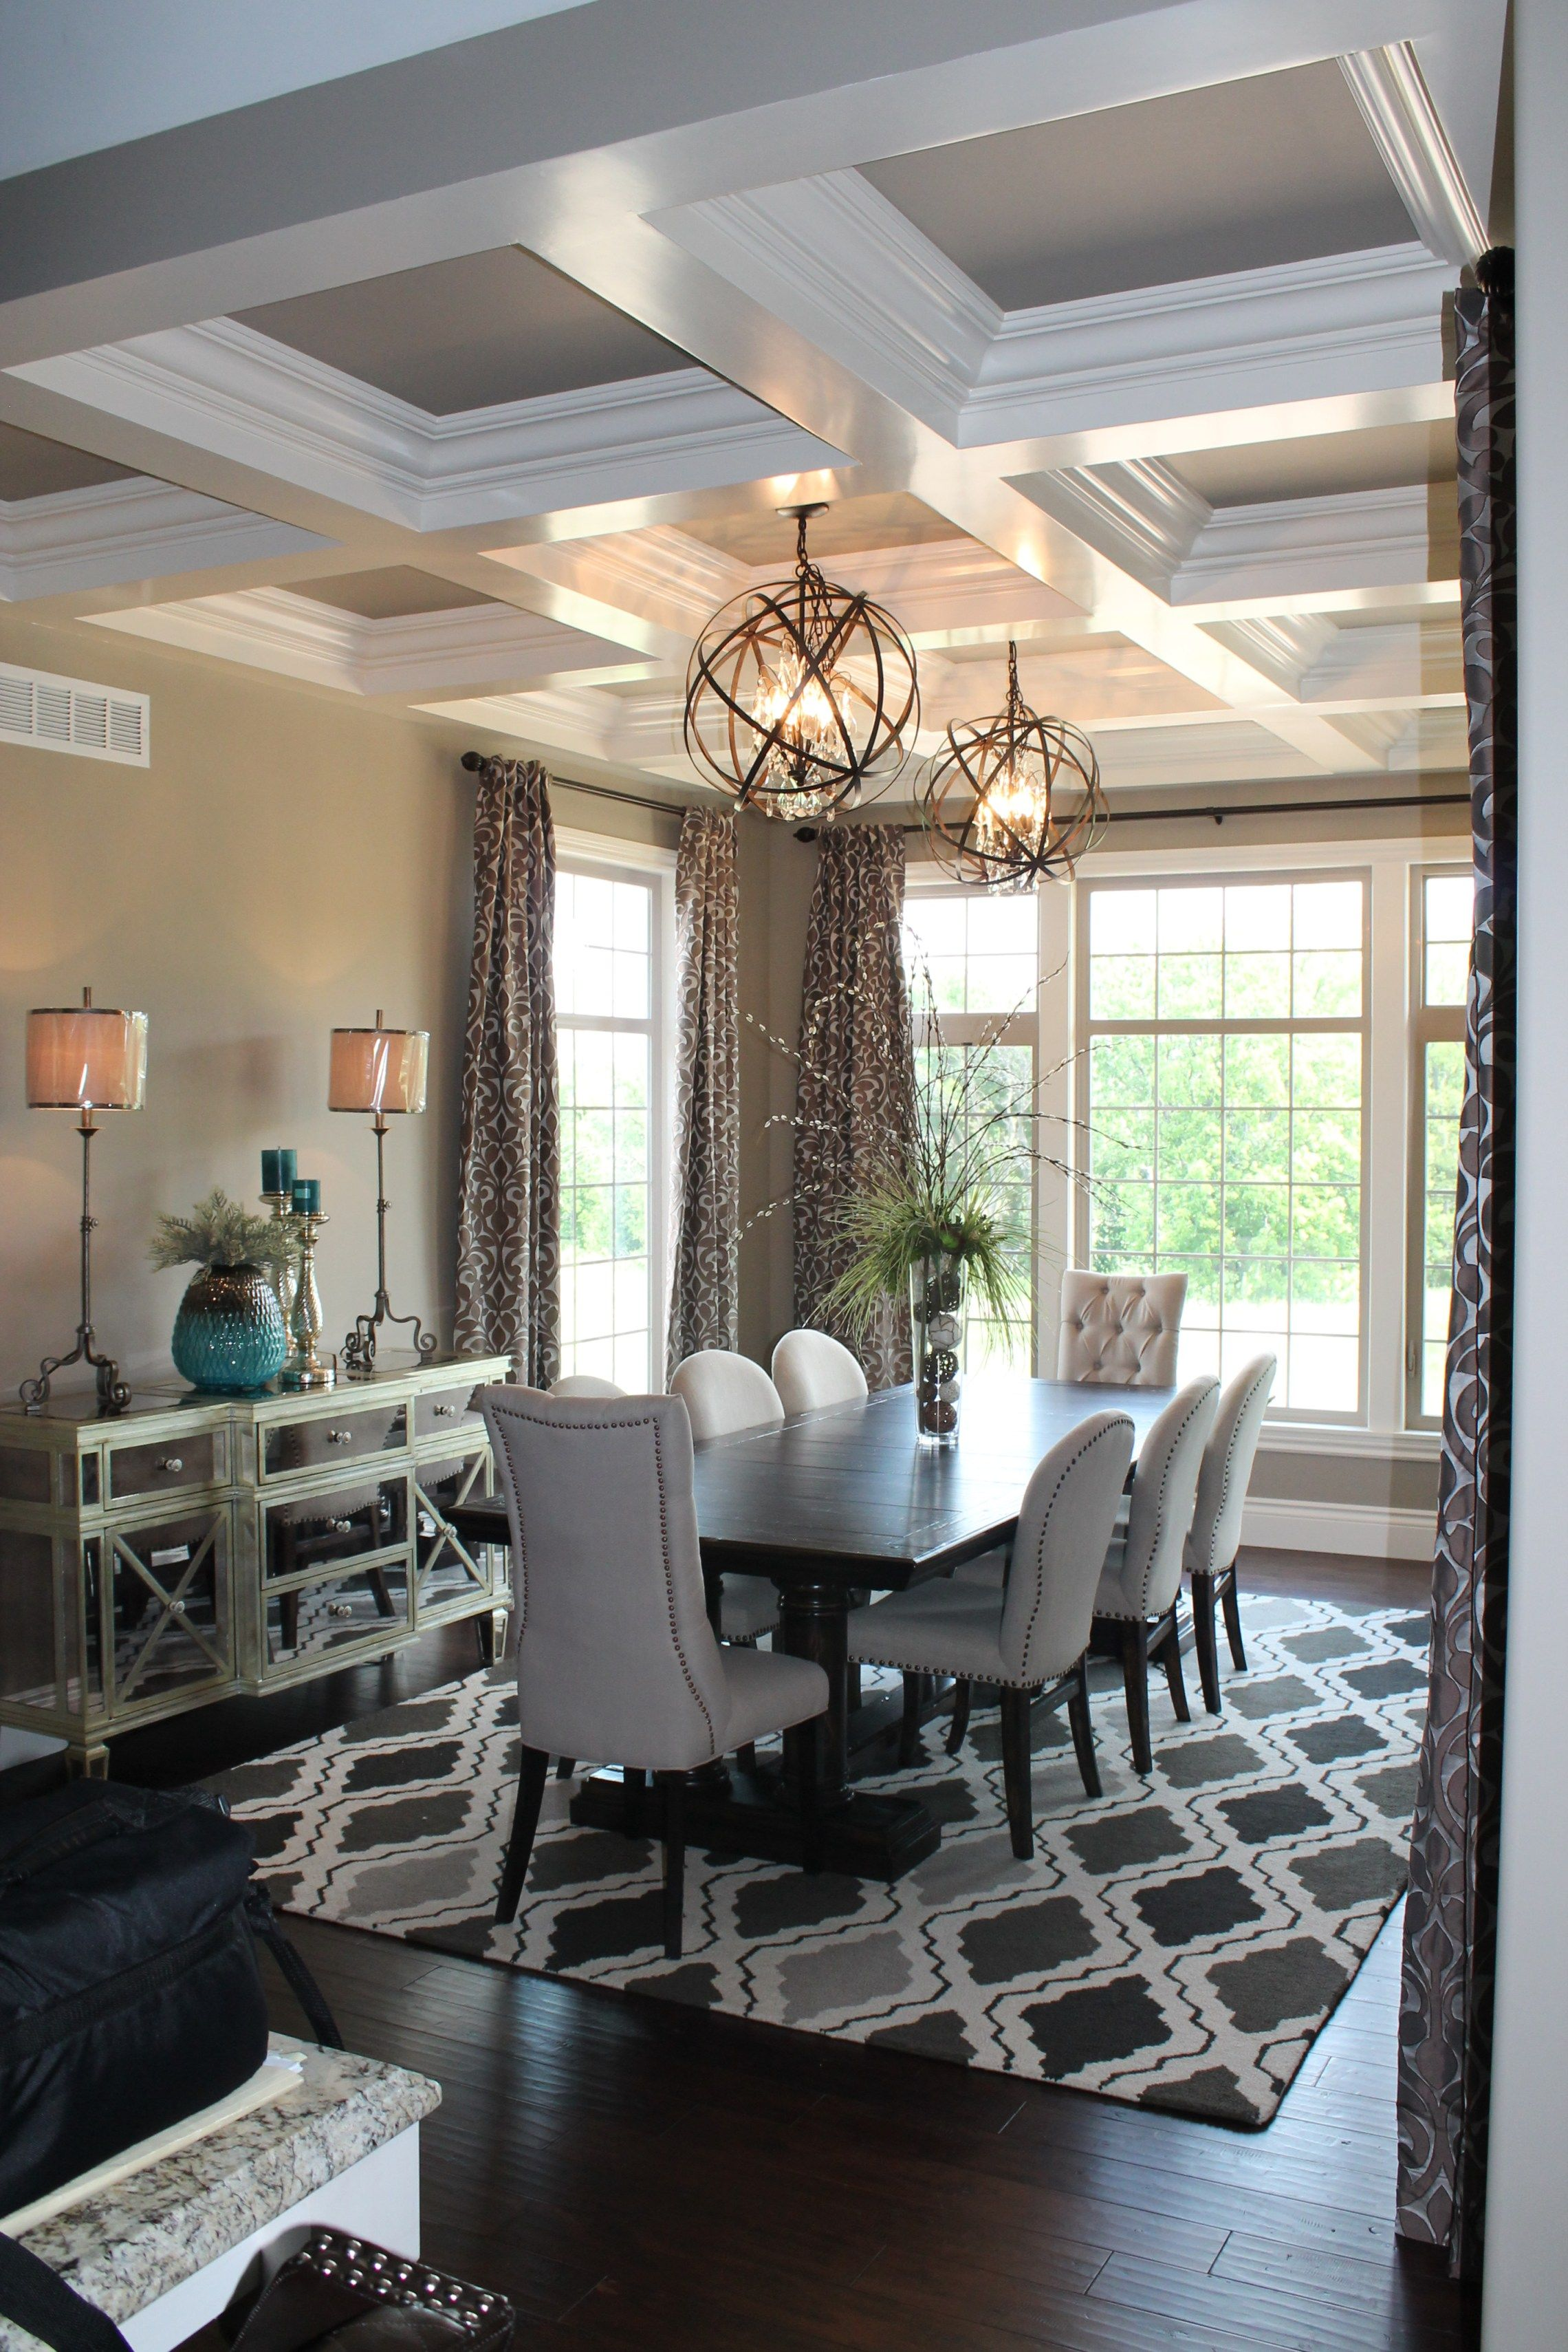 Simple Dining Room Decor For A Transitional Season: 5 Easy Tips To Master Transitional Design